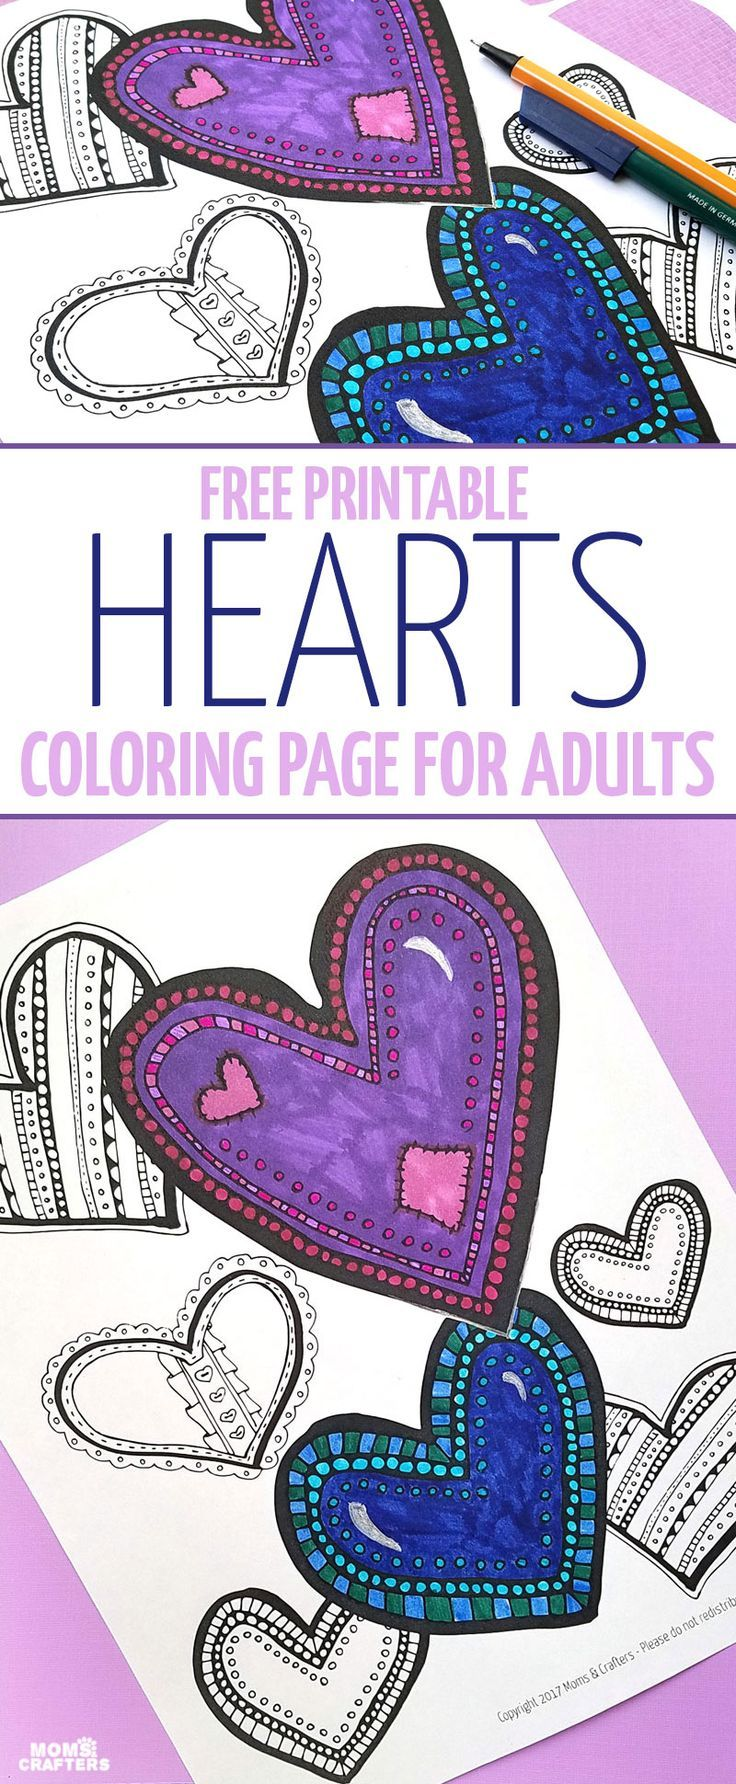 Spring coloring pages for upper elementary - Free Printable Hearts Coloring Page